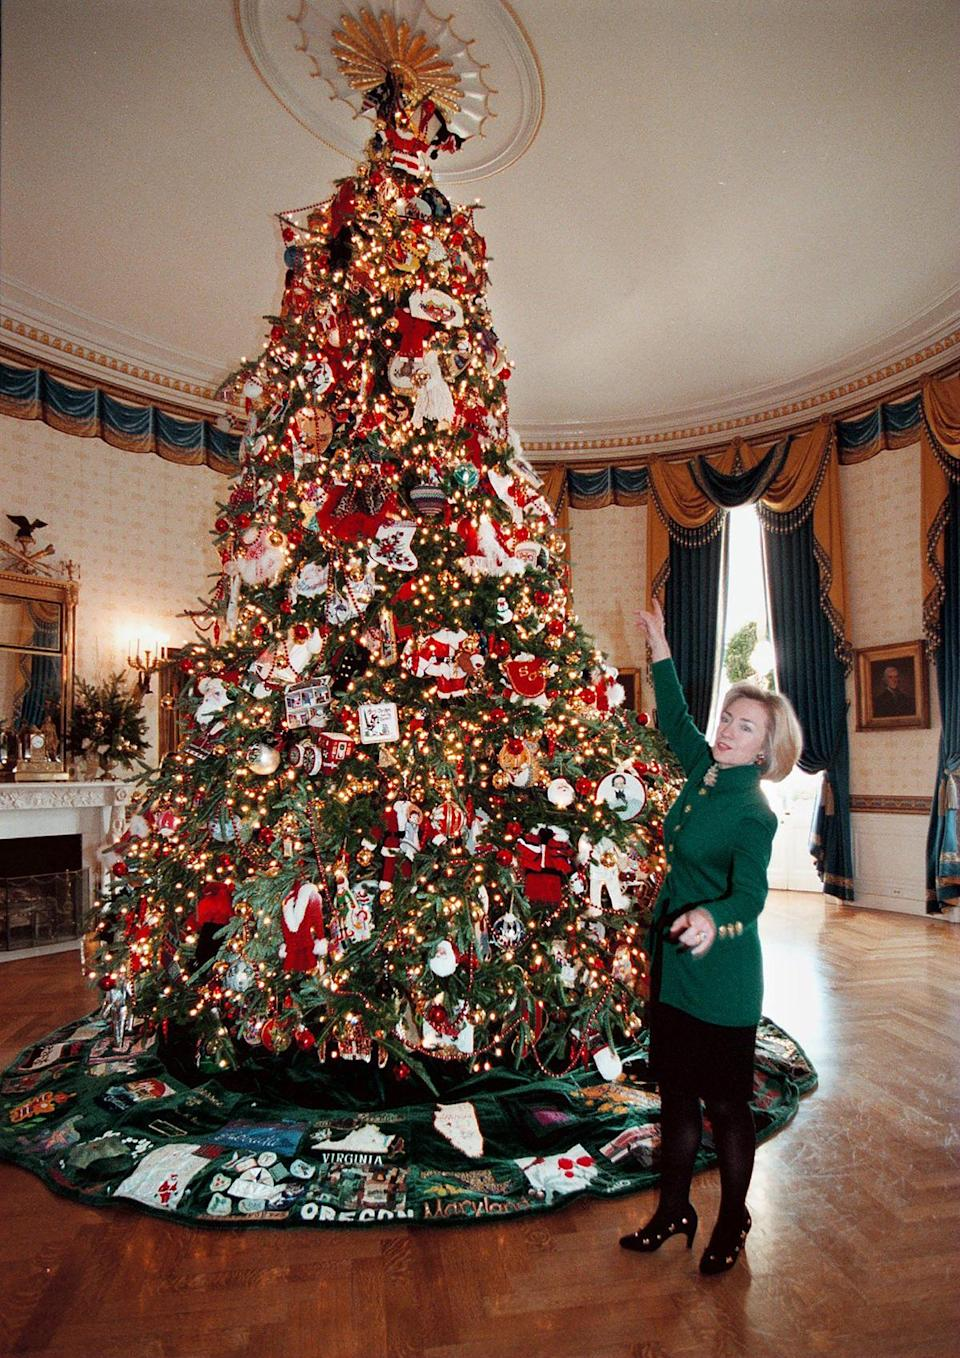 """<p>The record for the most Christmas trees decorating the White House is held by the Clinton administration, who put up 36 trees in 1997 all with the theme of """"Santa's Workshop.""""</p> <p>The record was previously long held by the Eisenhower administration, which spread 26 trees across each floor of the house.</p>"""